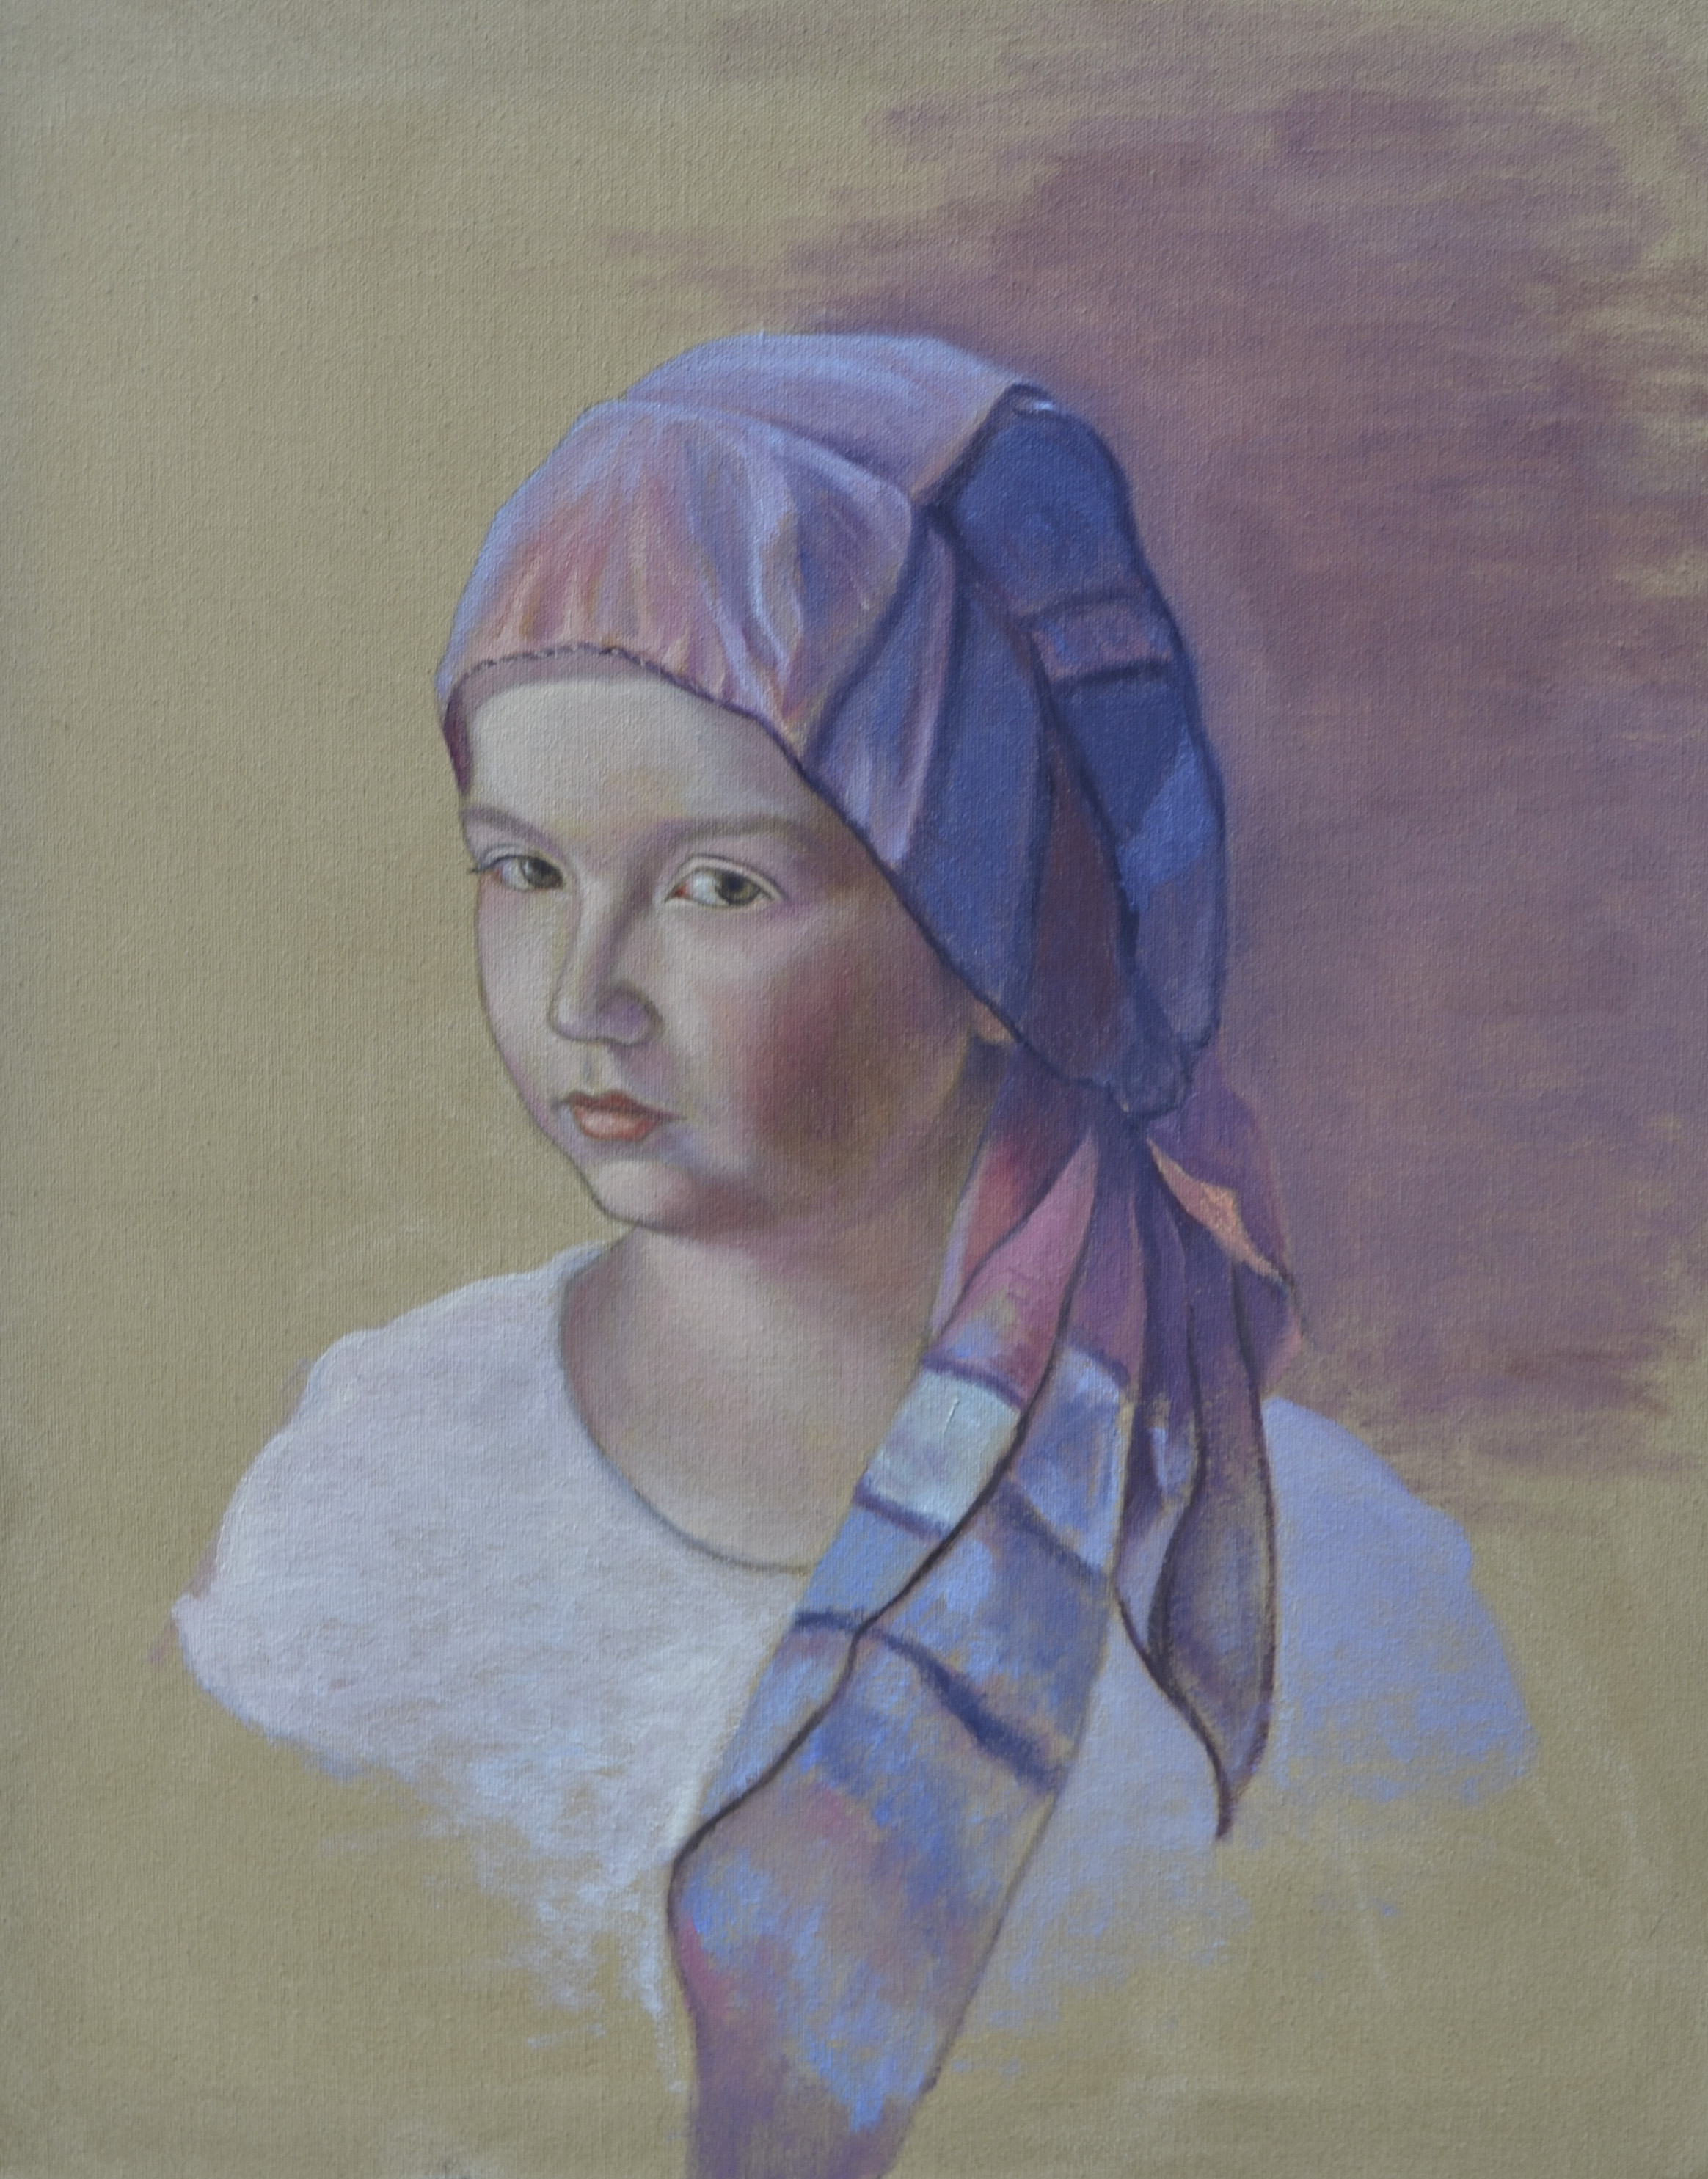 Dalila-study oil on canvas.jpg